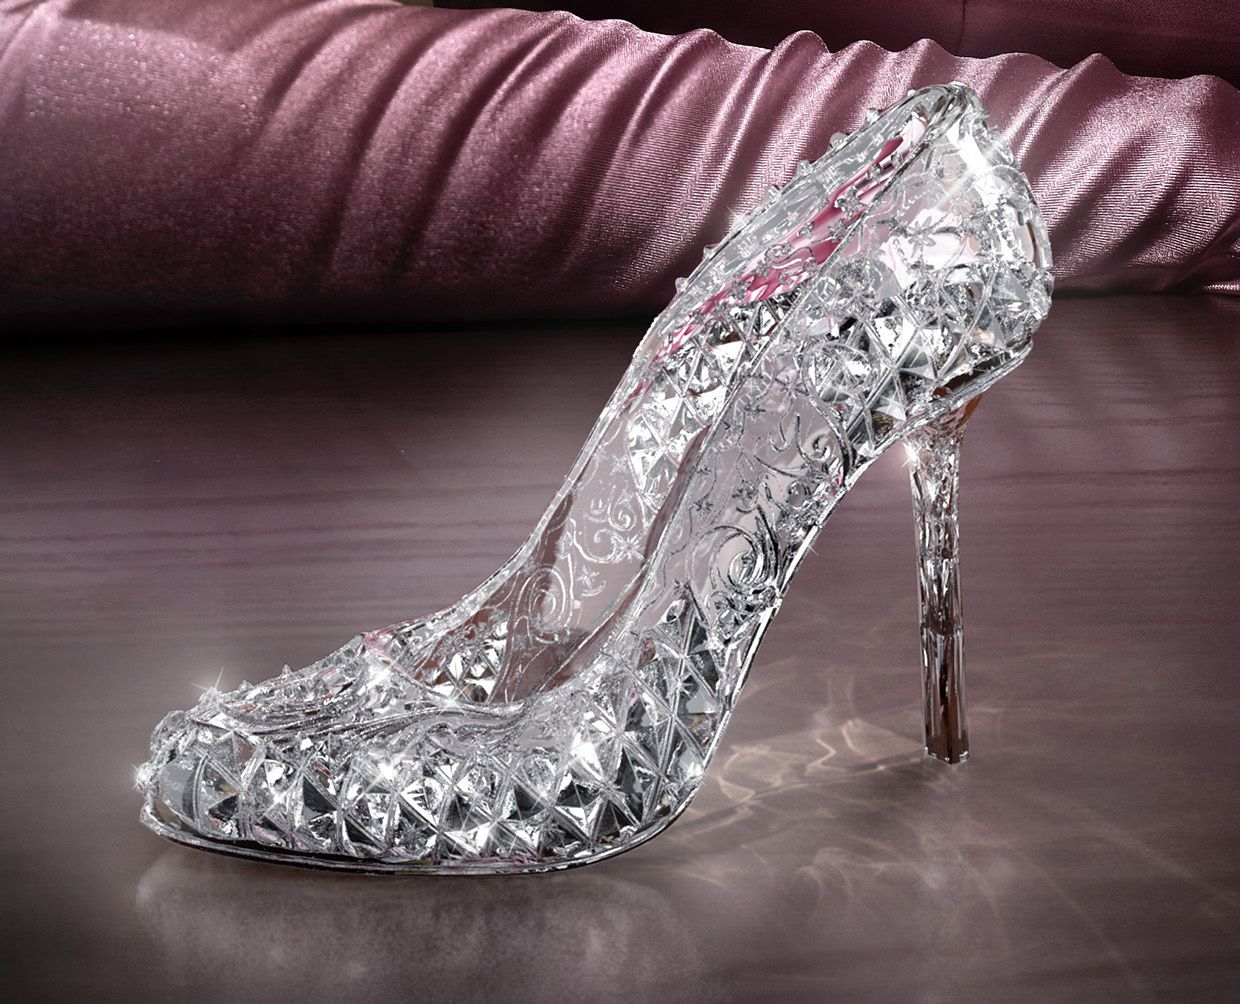 Sunset Desires | Glass slipper, Glass and Wedding shoes